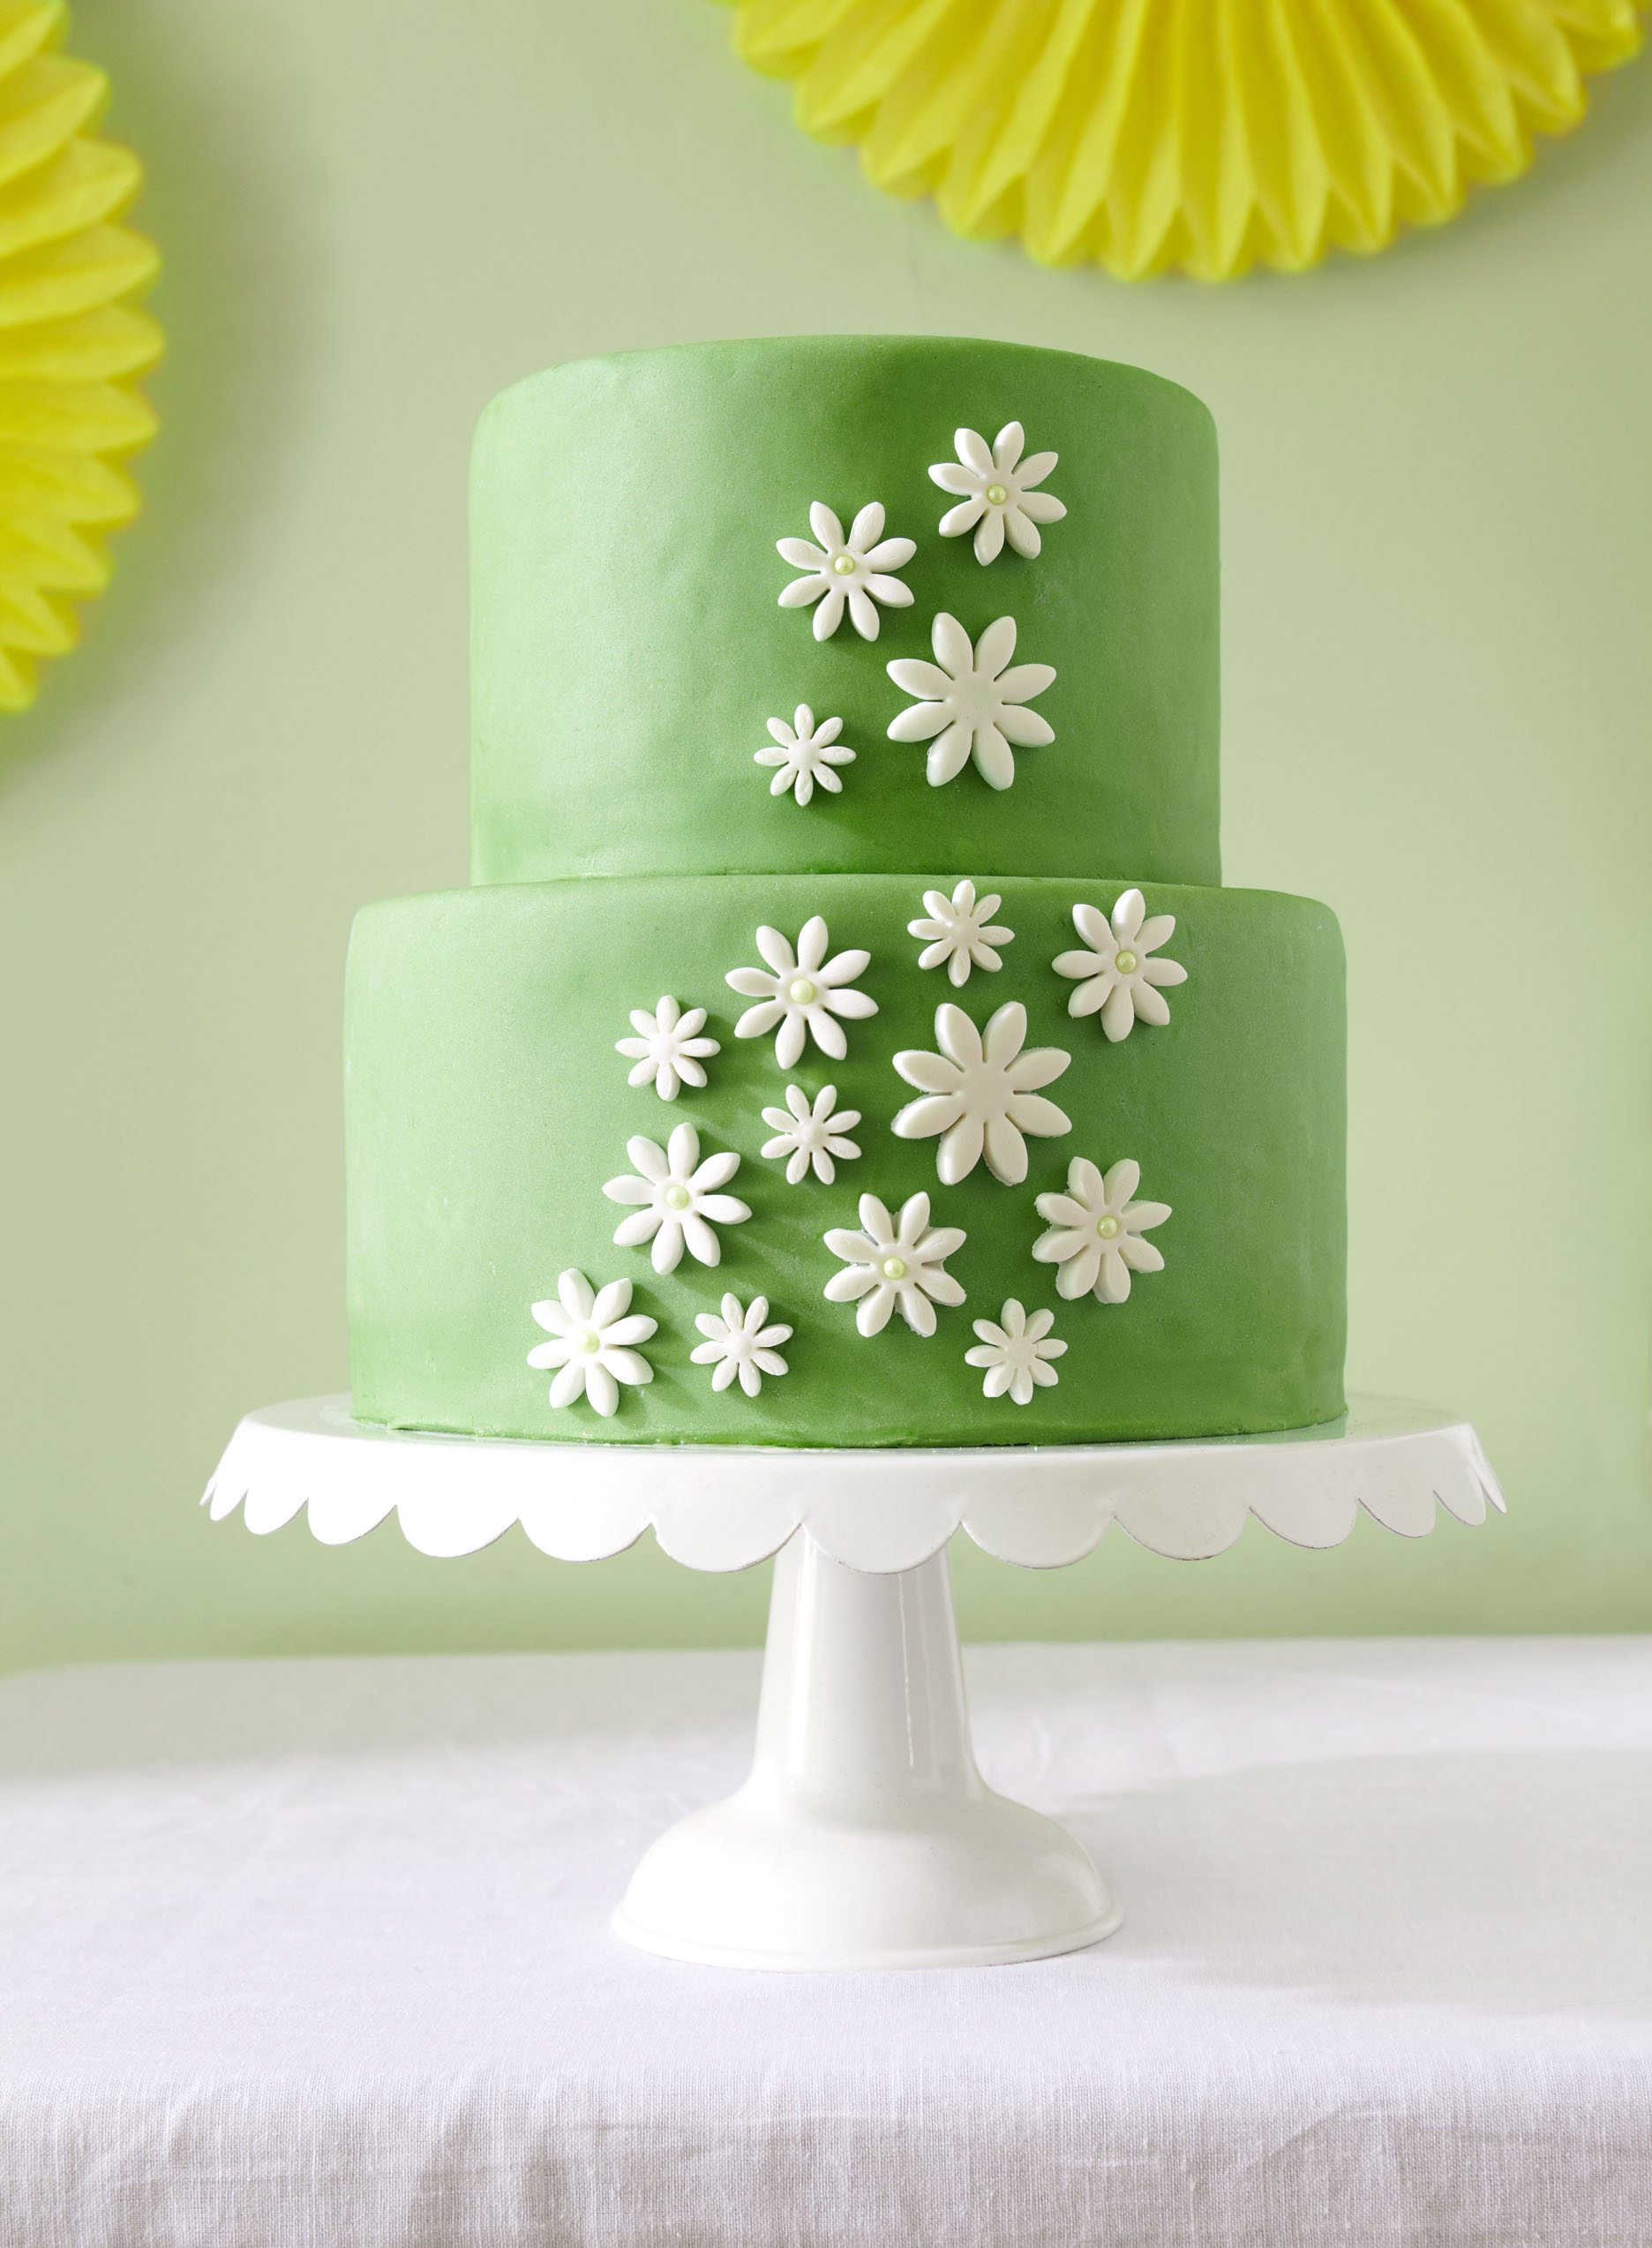 Green Daisy Cake The Sweetest Occasion